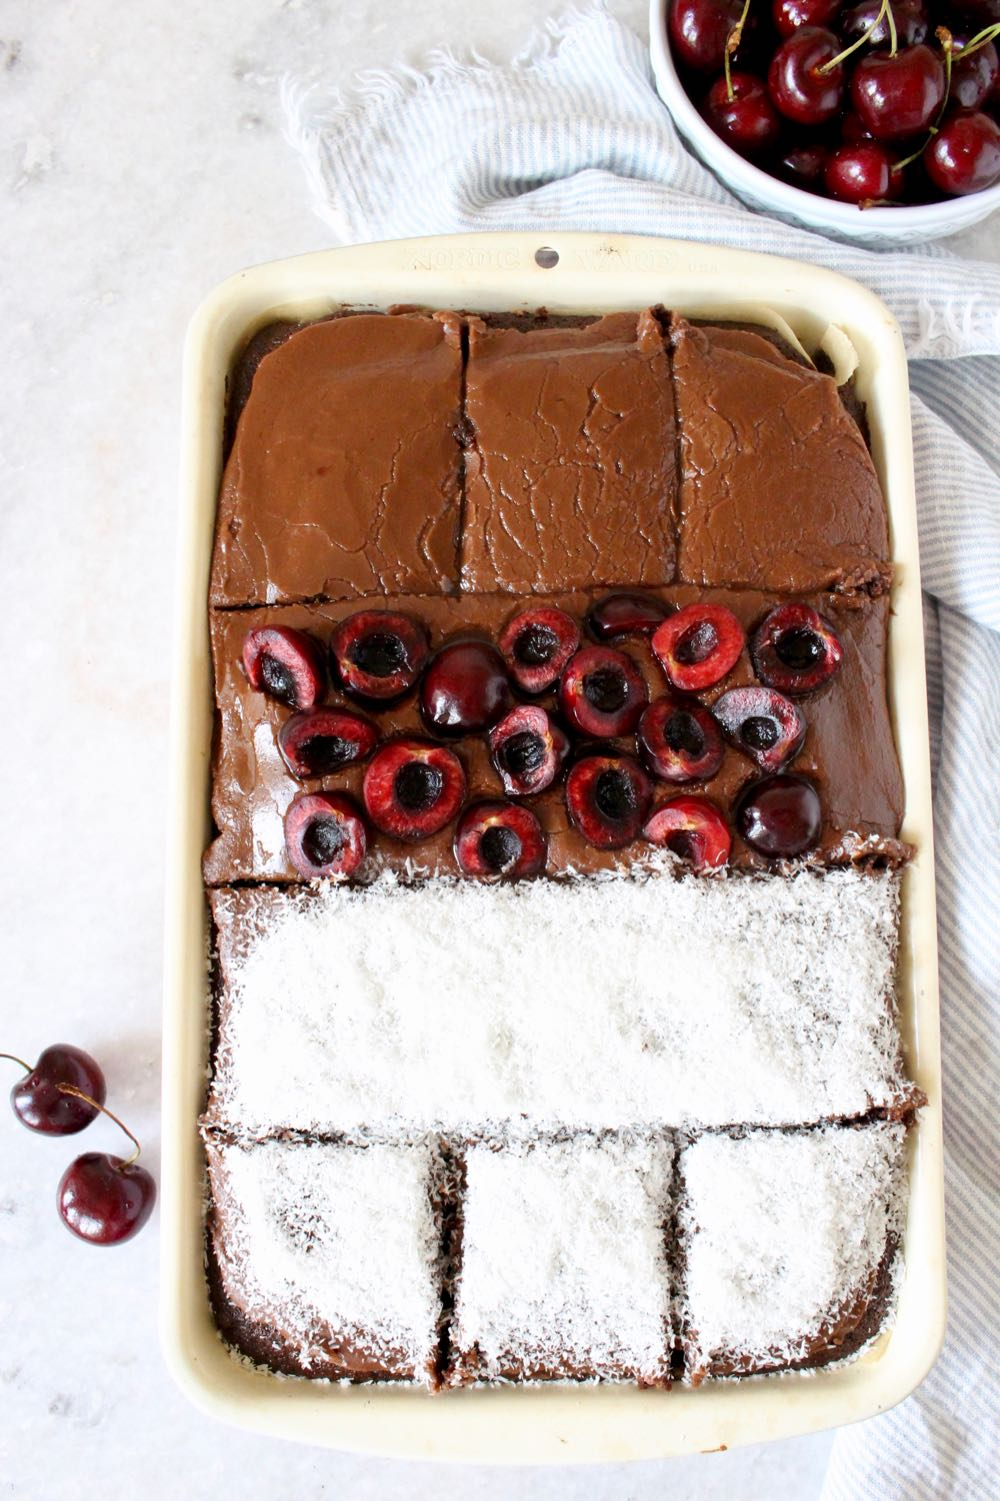 chocolate sheet cake in pan with frosting, coconut and fresh cherries